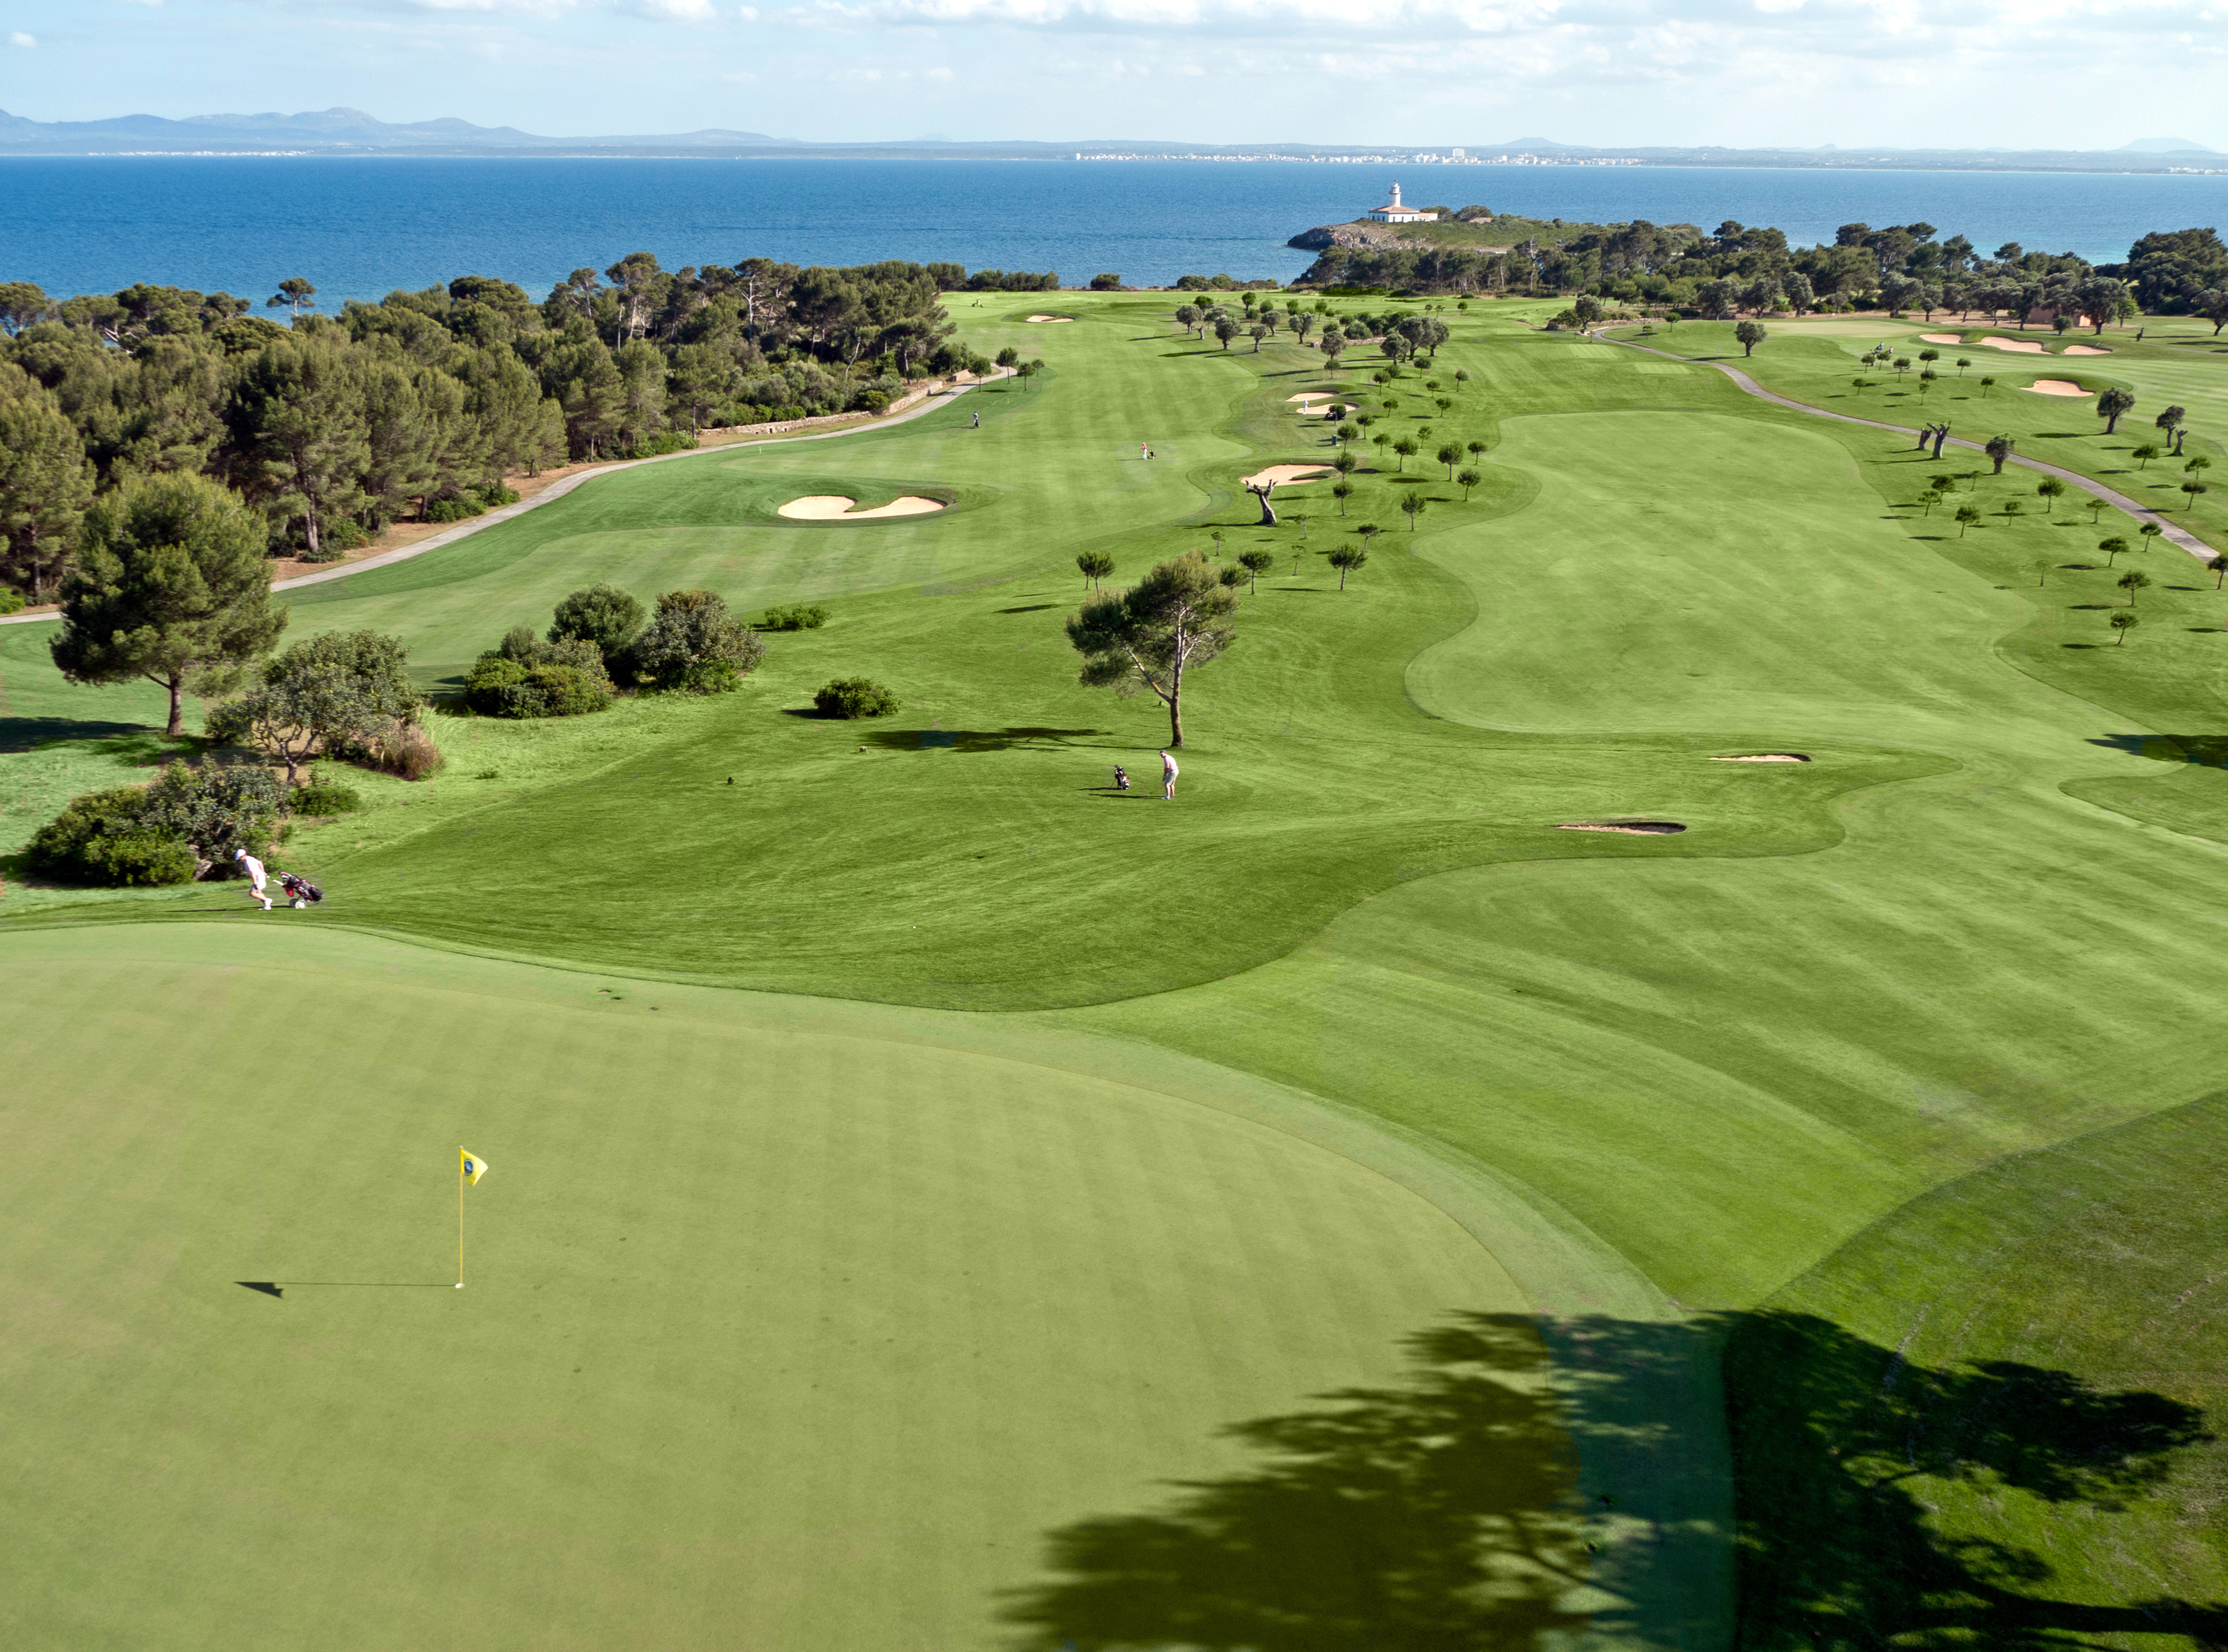 The course slopes towards the Mediterranean with sea views on 17 holes